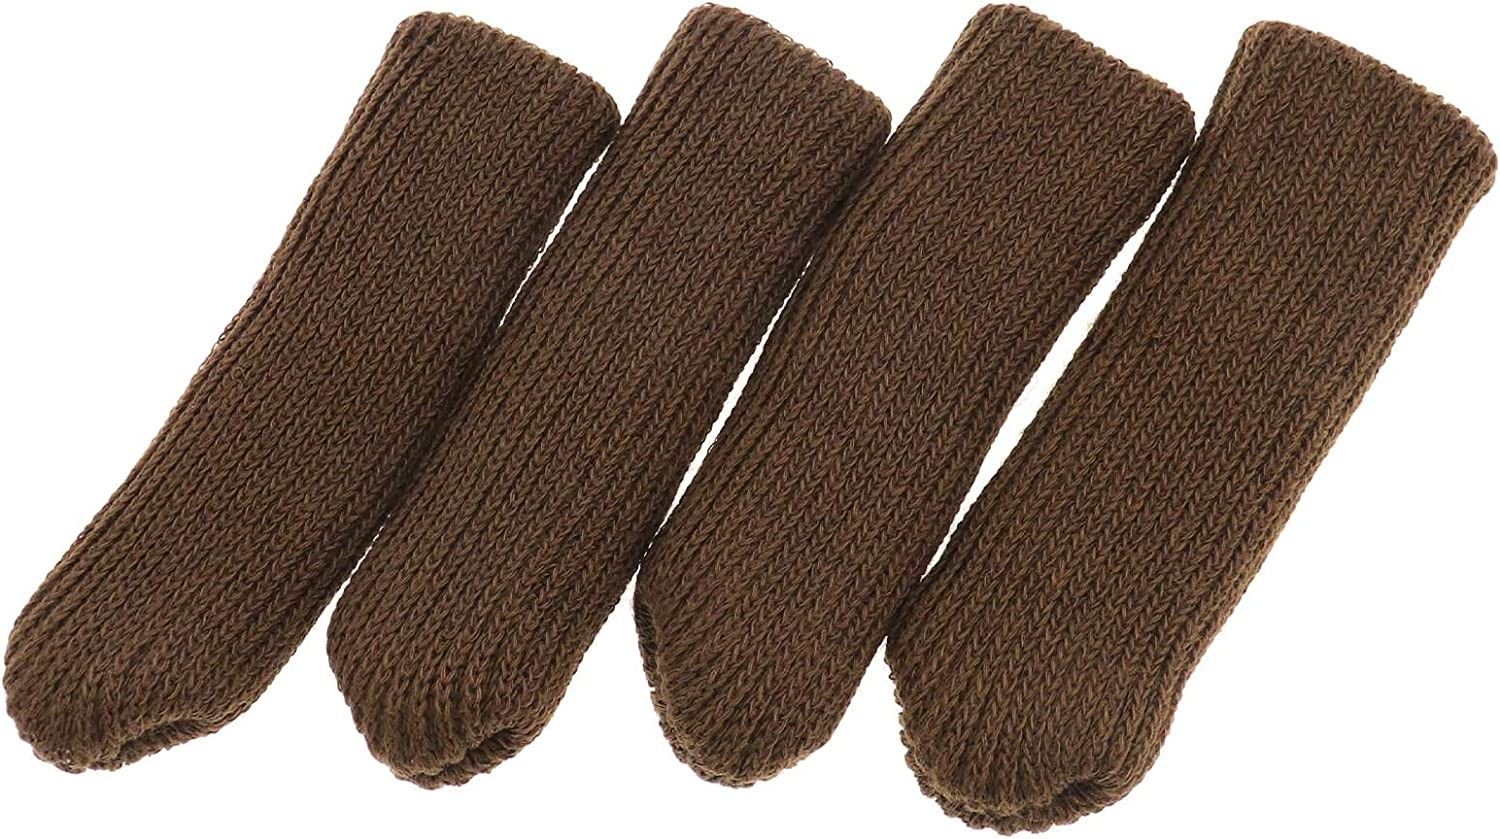 OTOTEC black//brown 32 pieces furniture table chair socks covers caps set floor protectors reduce noise double thickness knitted high elastic non-slip suitable 1.8 to 3 inches Black